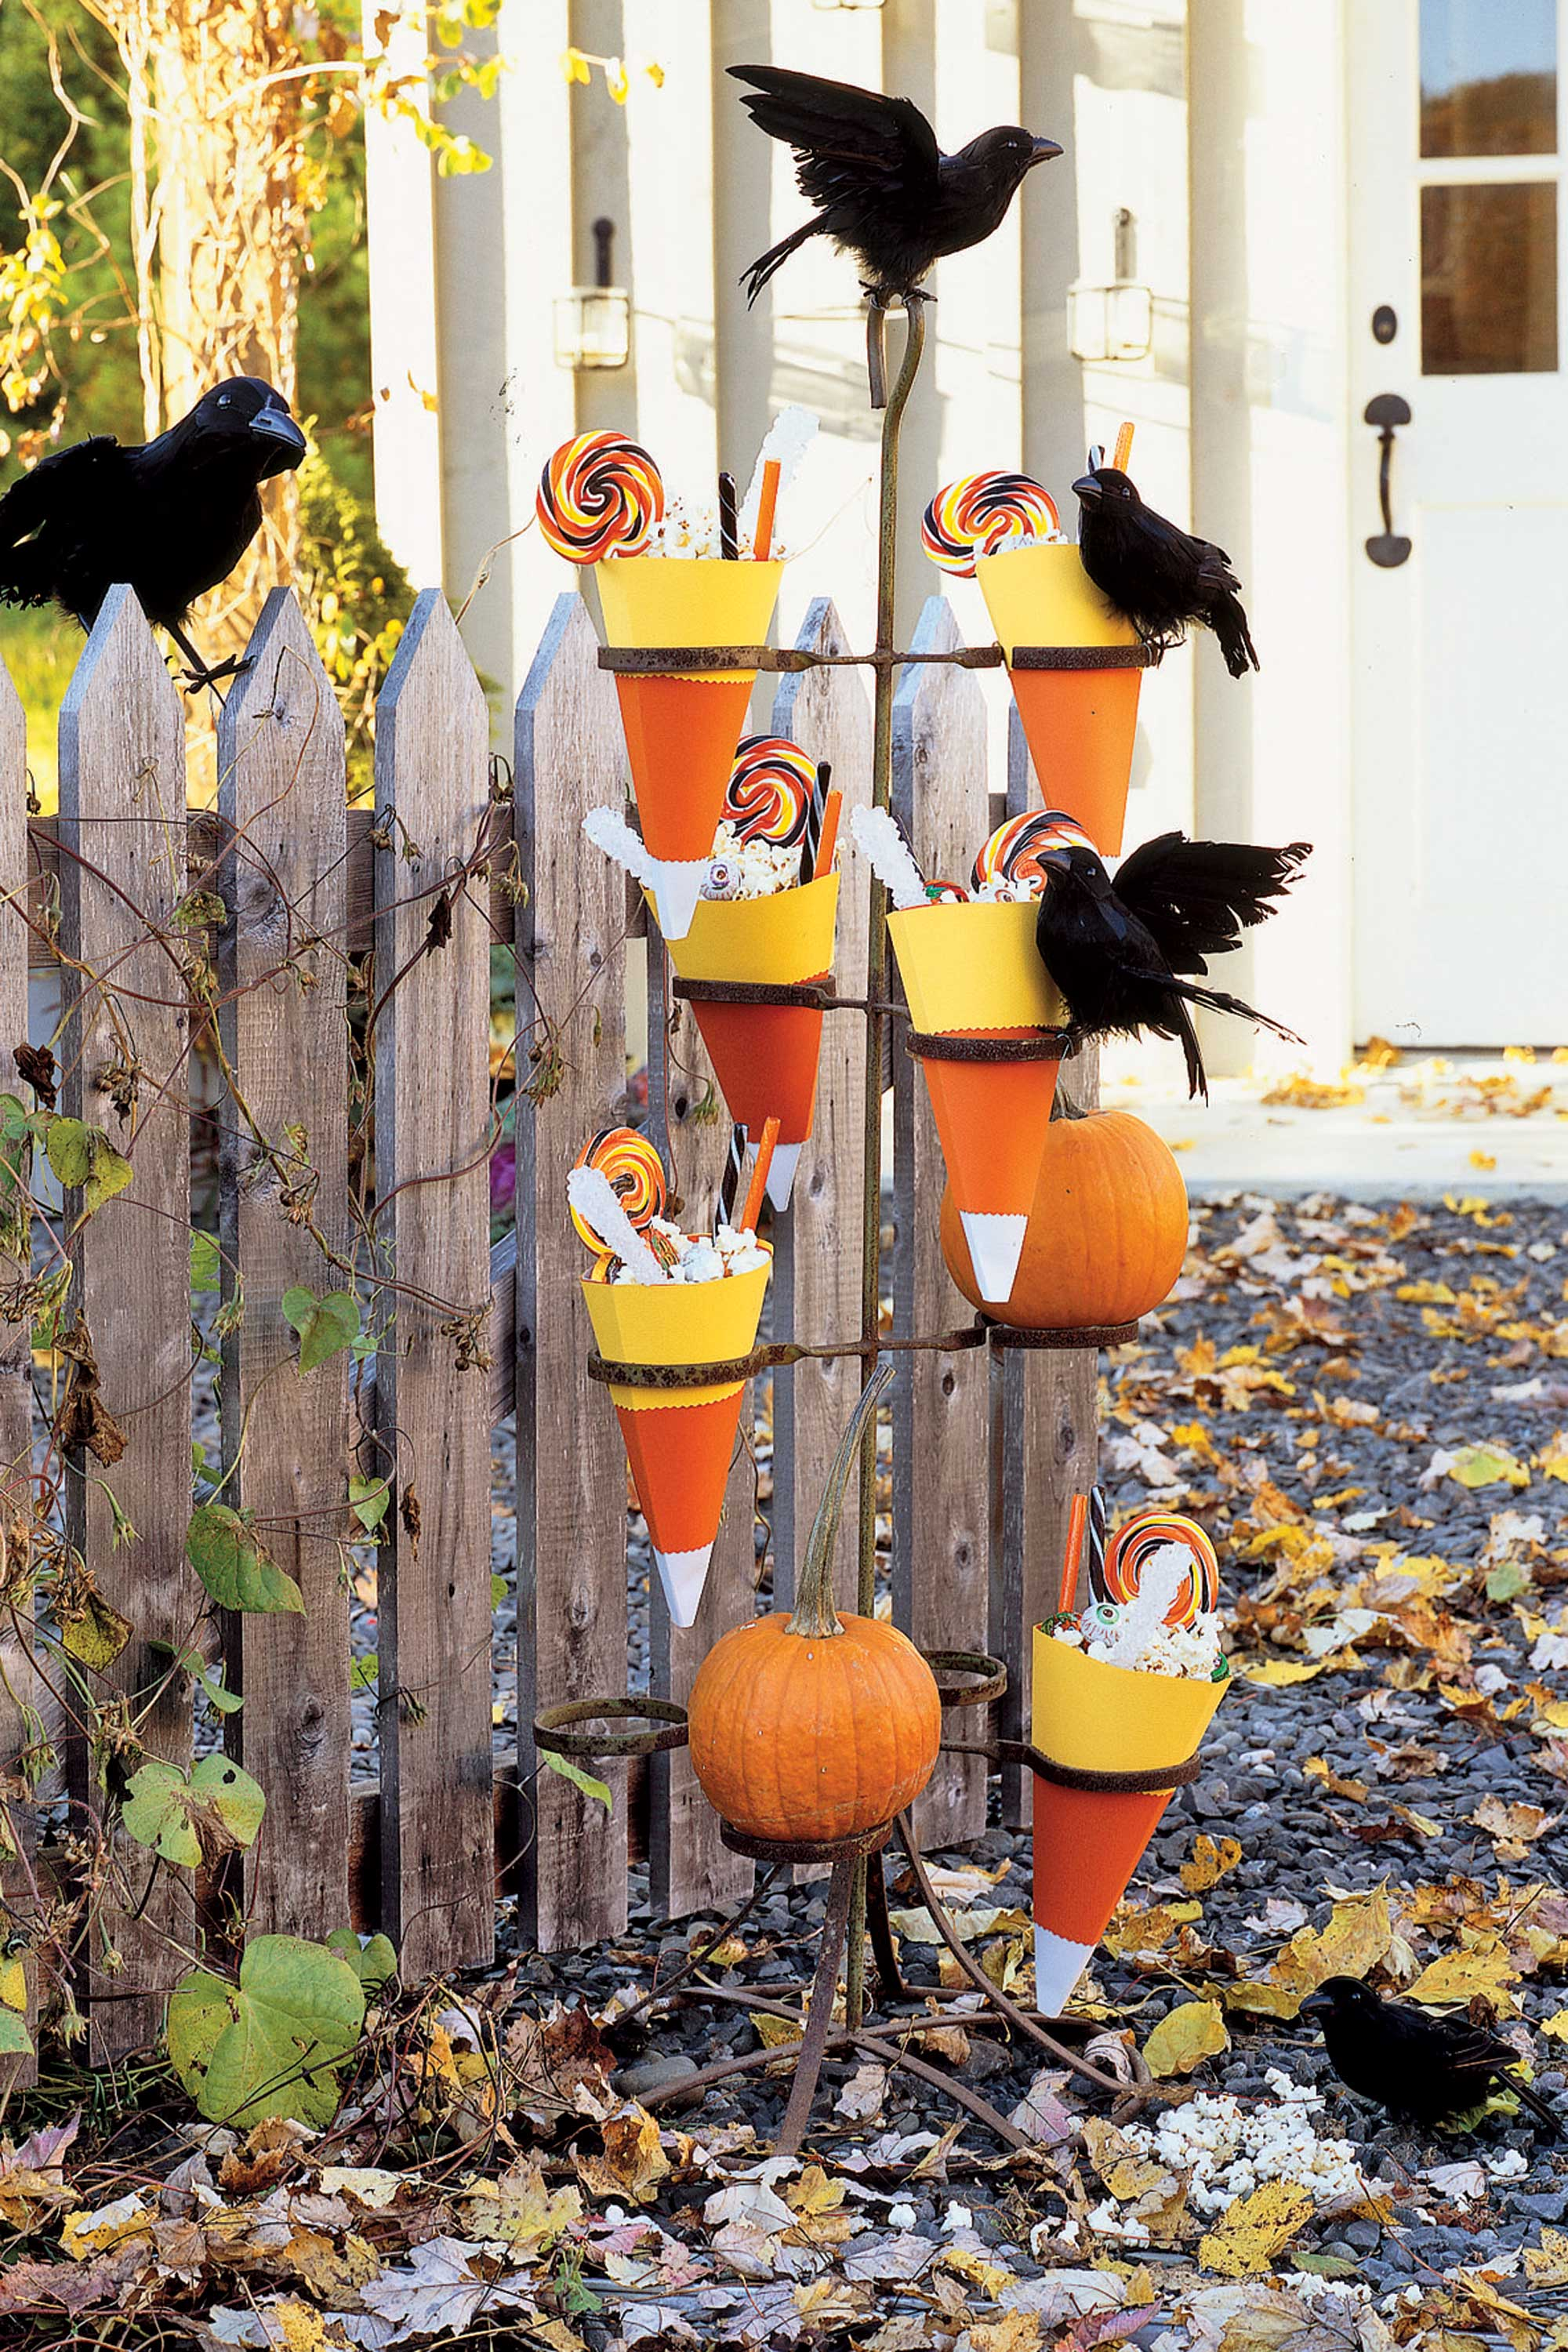 Uncategorized Decoration For Halloween Ideas 56 fun halloween party decorating ideas spooky decor